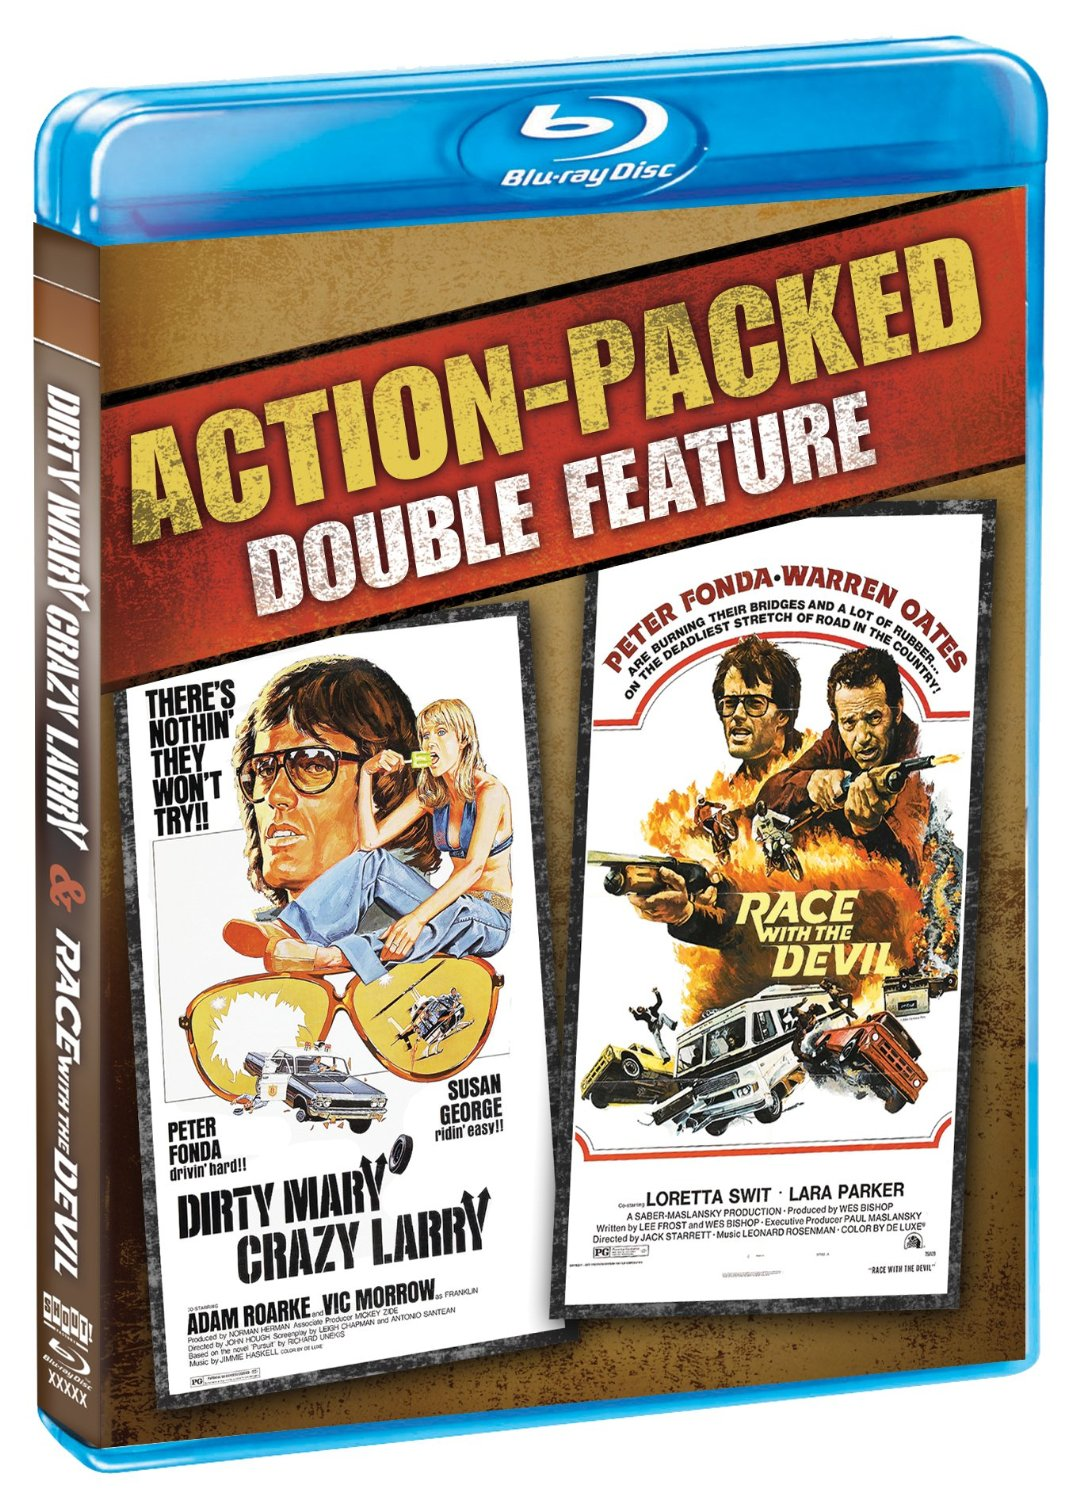 Dirty Mary Crazy Larry & Race with the Devil out now on Blu-Ray